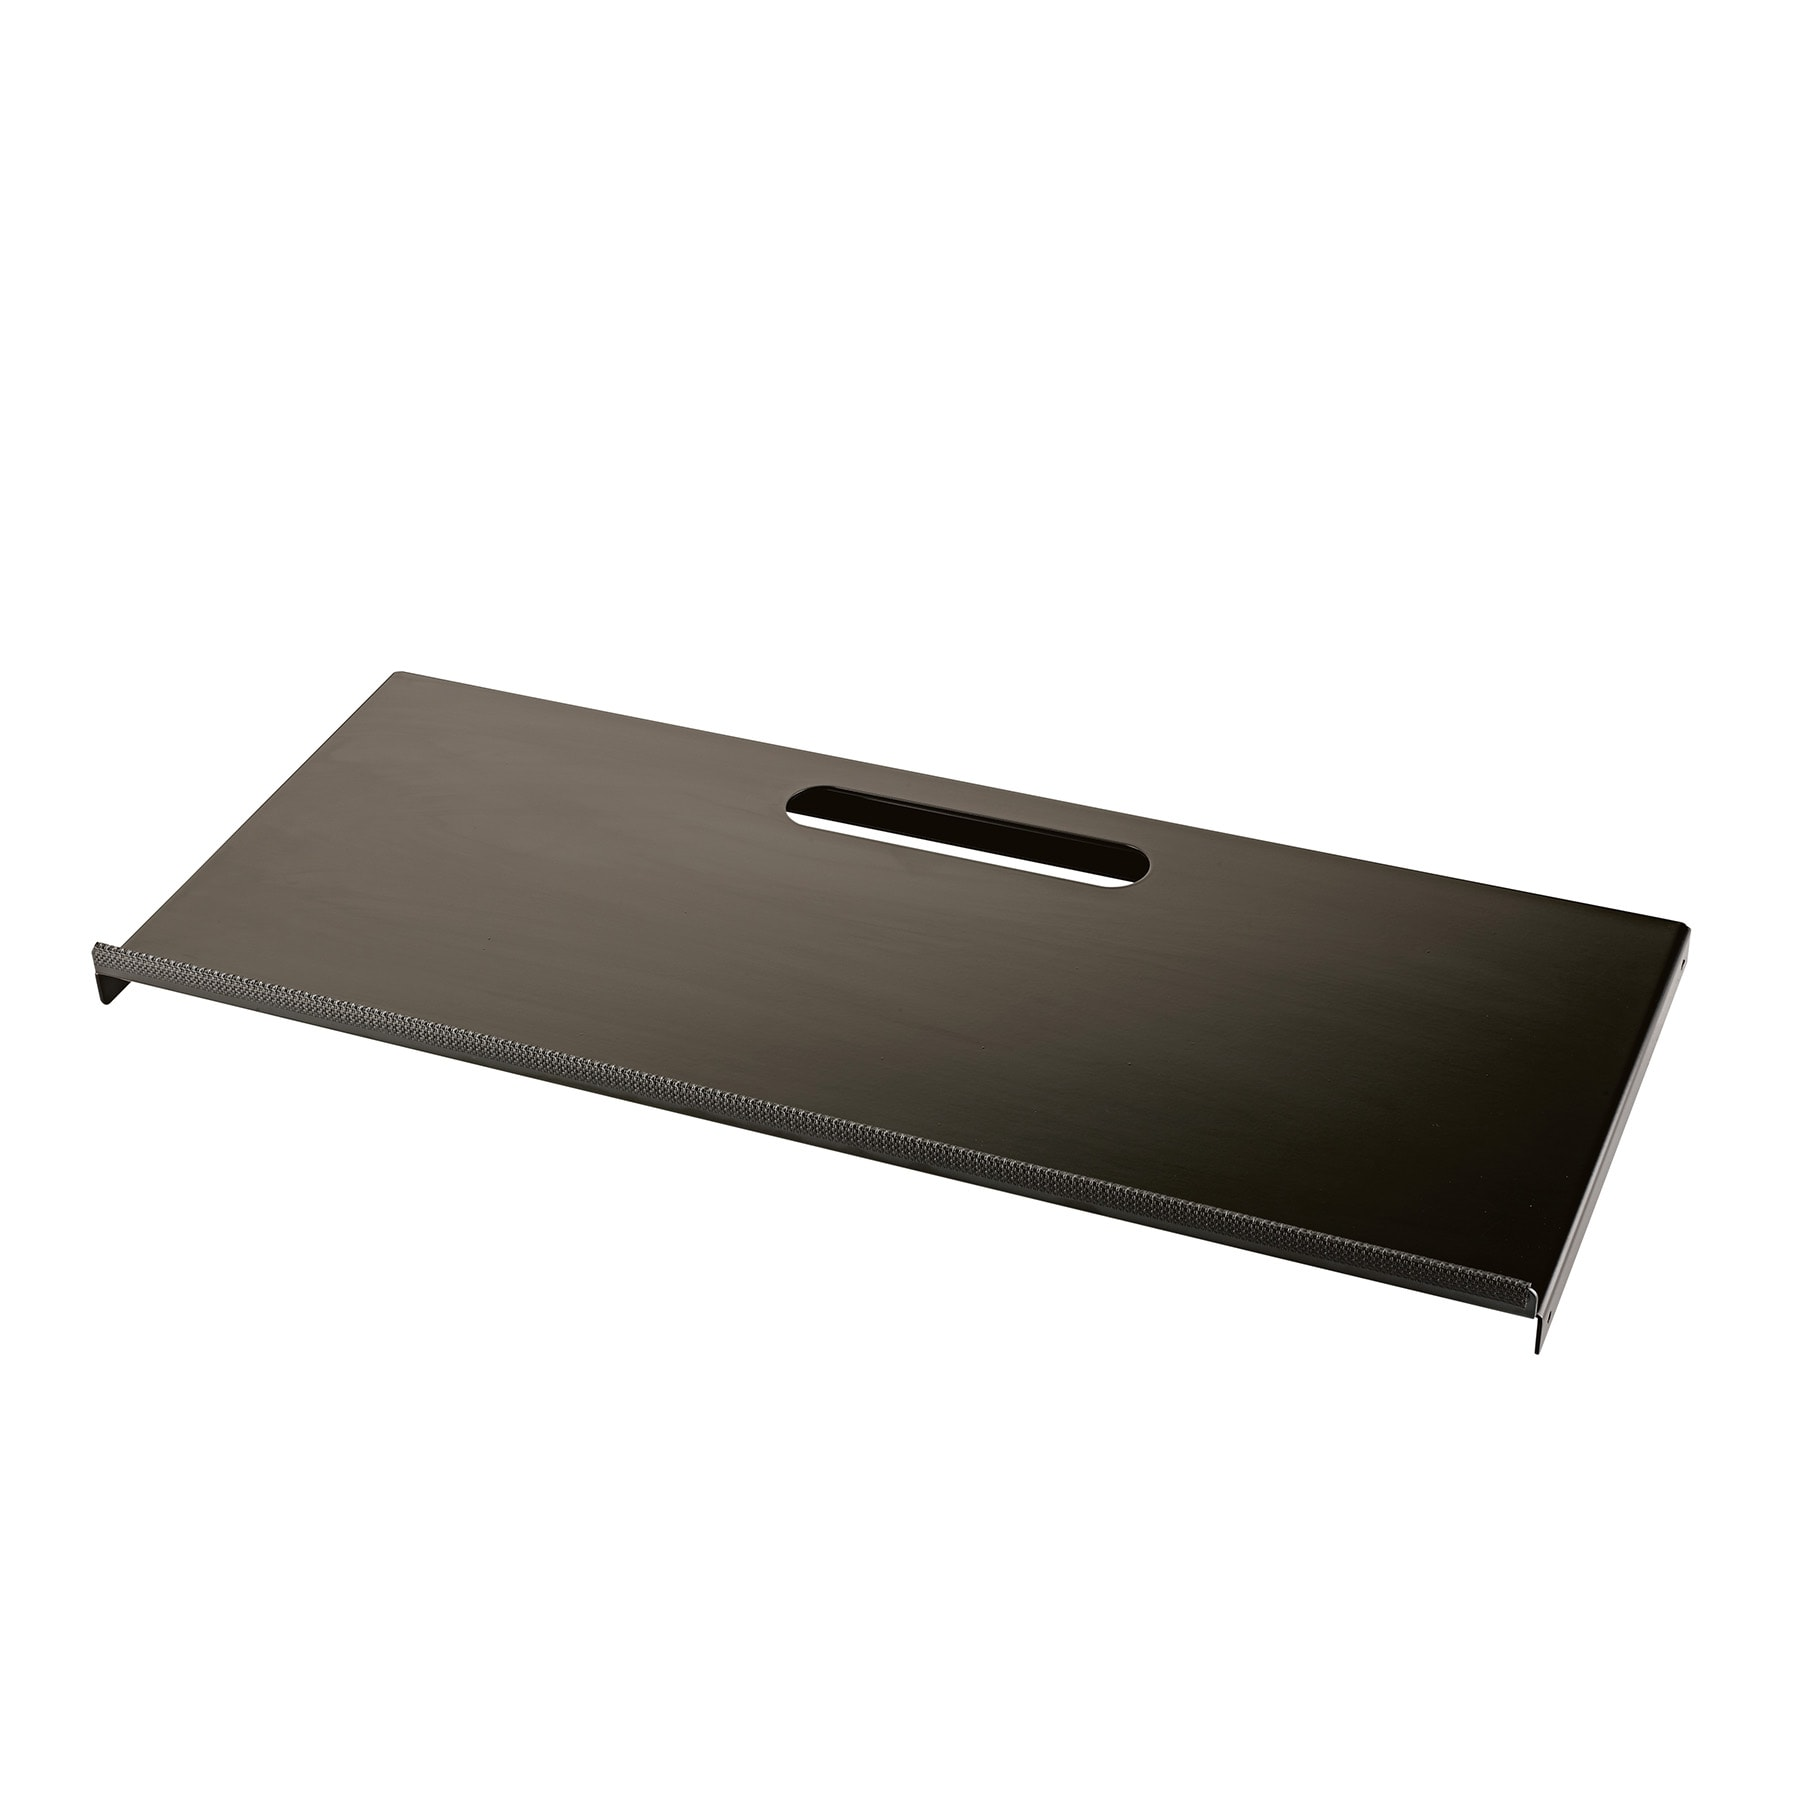 KM18824 - Controller keyboard tray